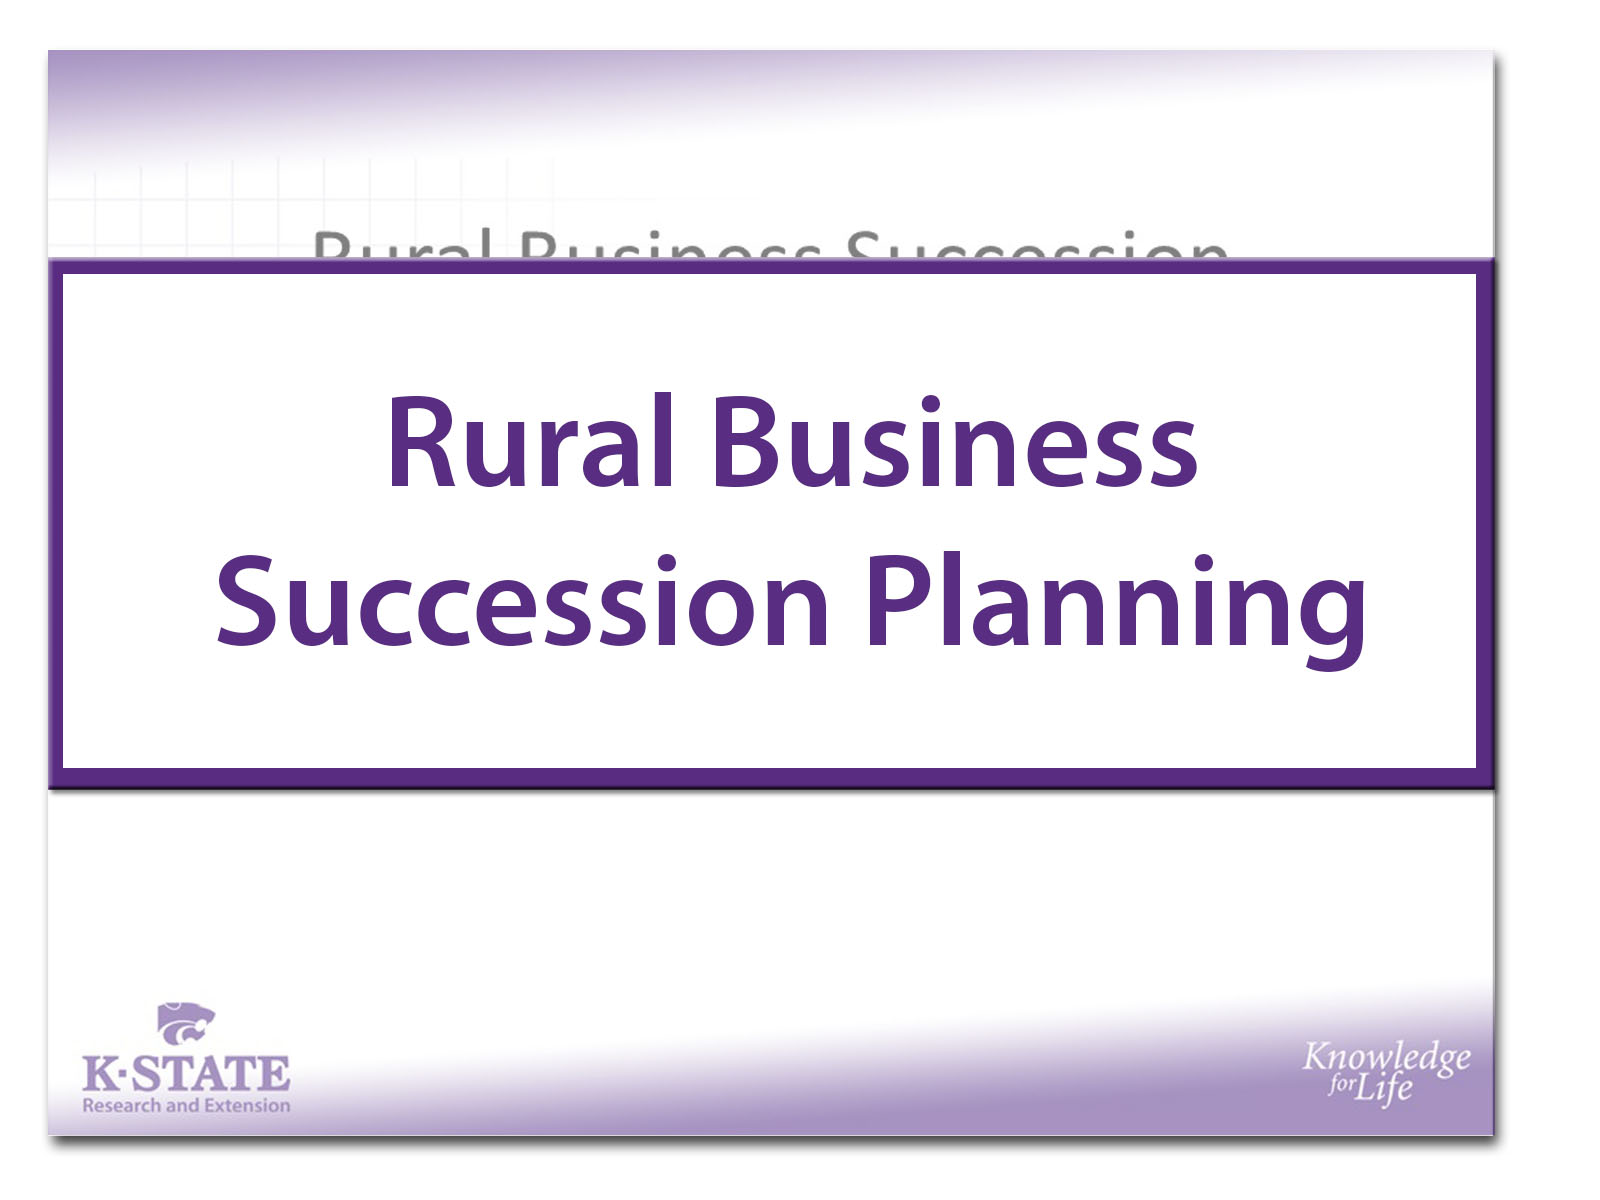 Rural Business Succession Planning